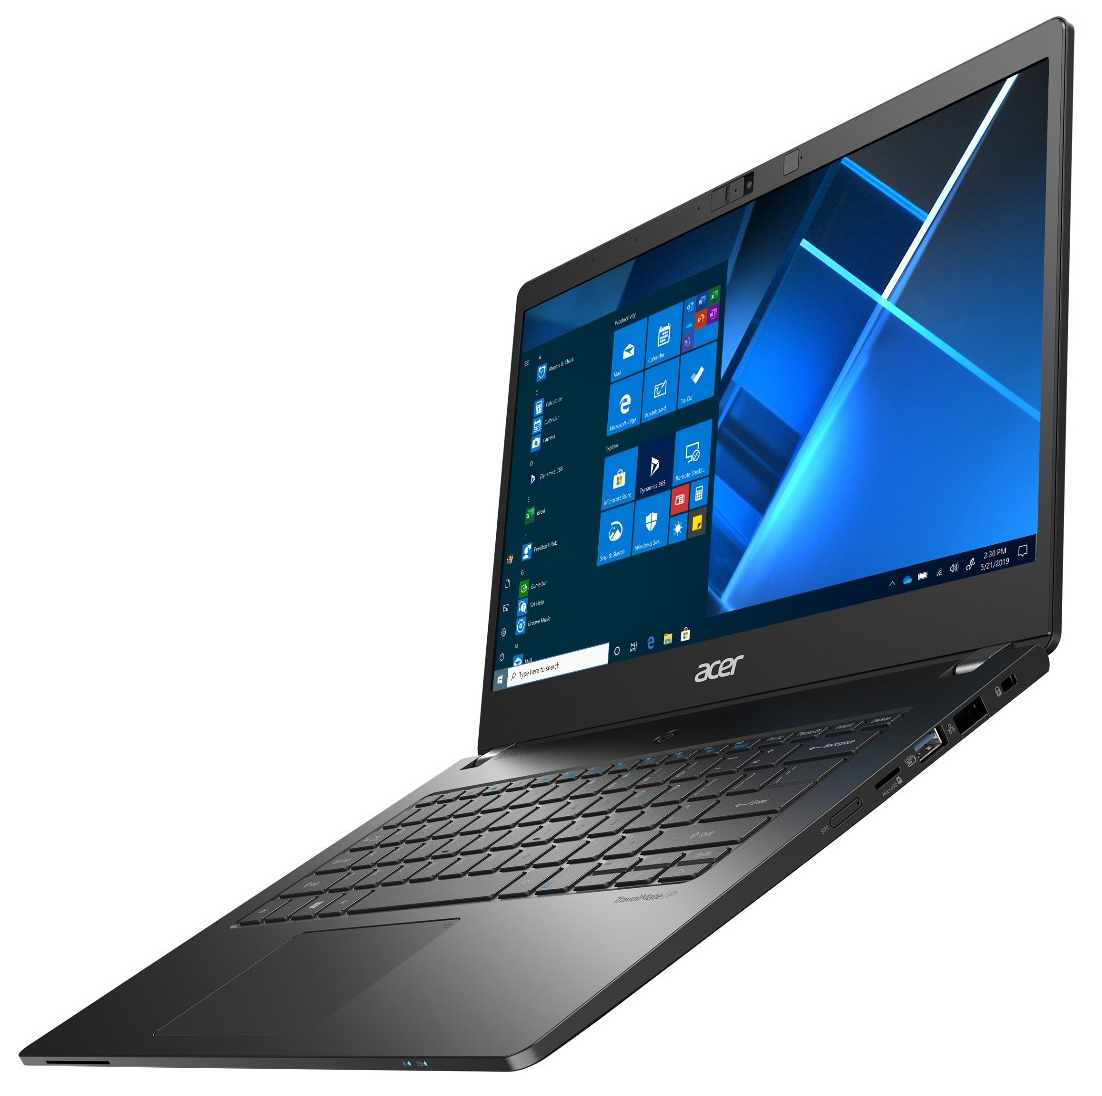 Image of the TravelMate P2 from Acer.